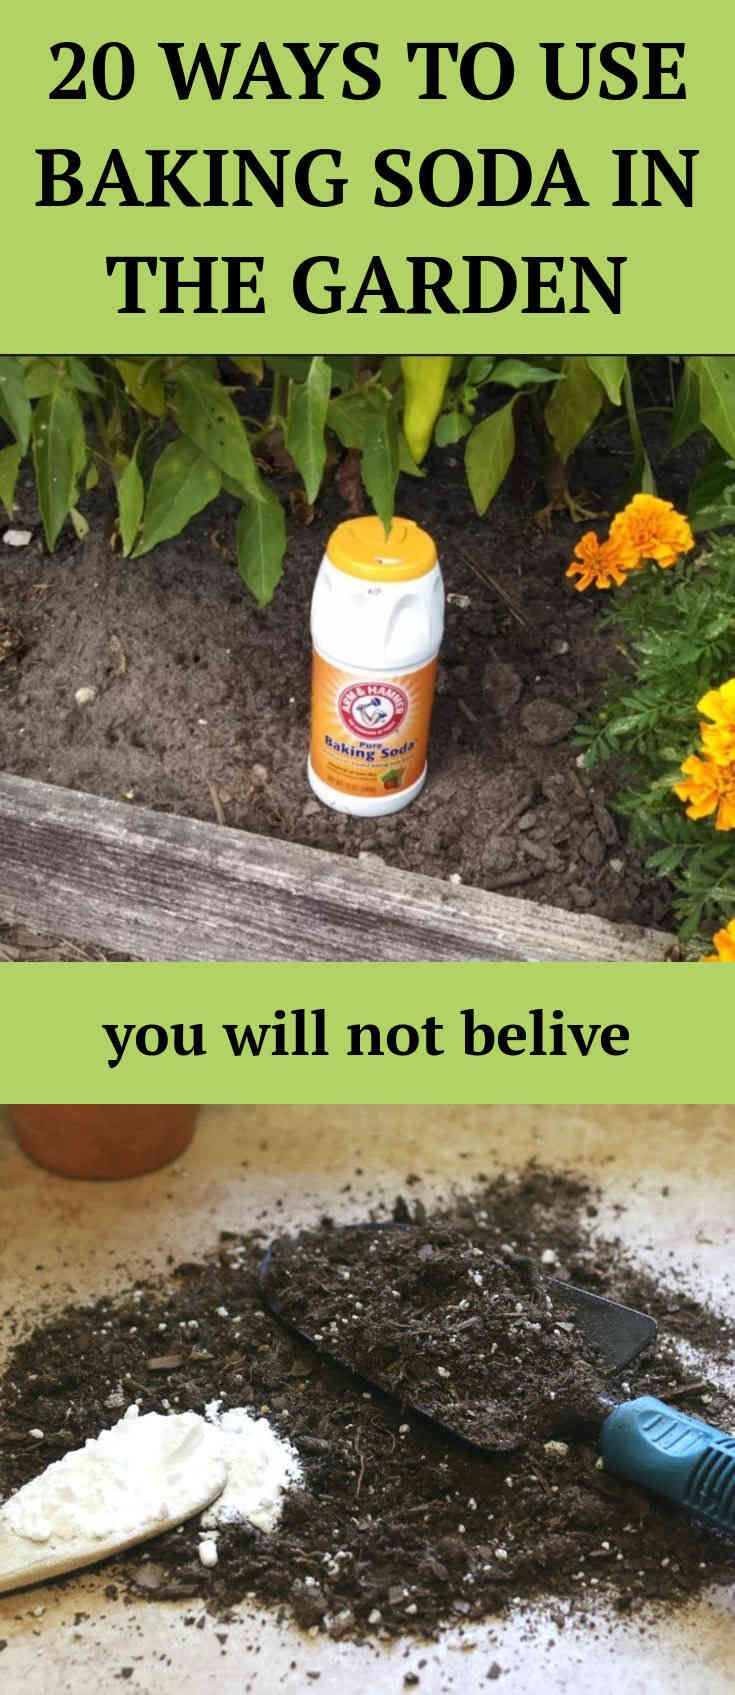 20 Great Ways to Use Baking Soda in the Garden Growing